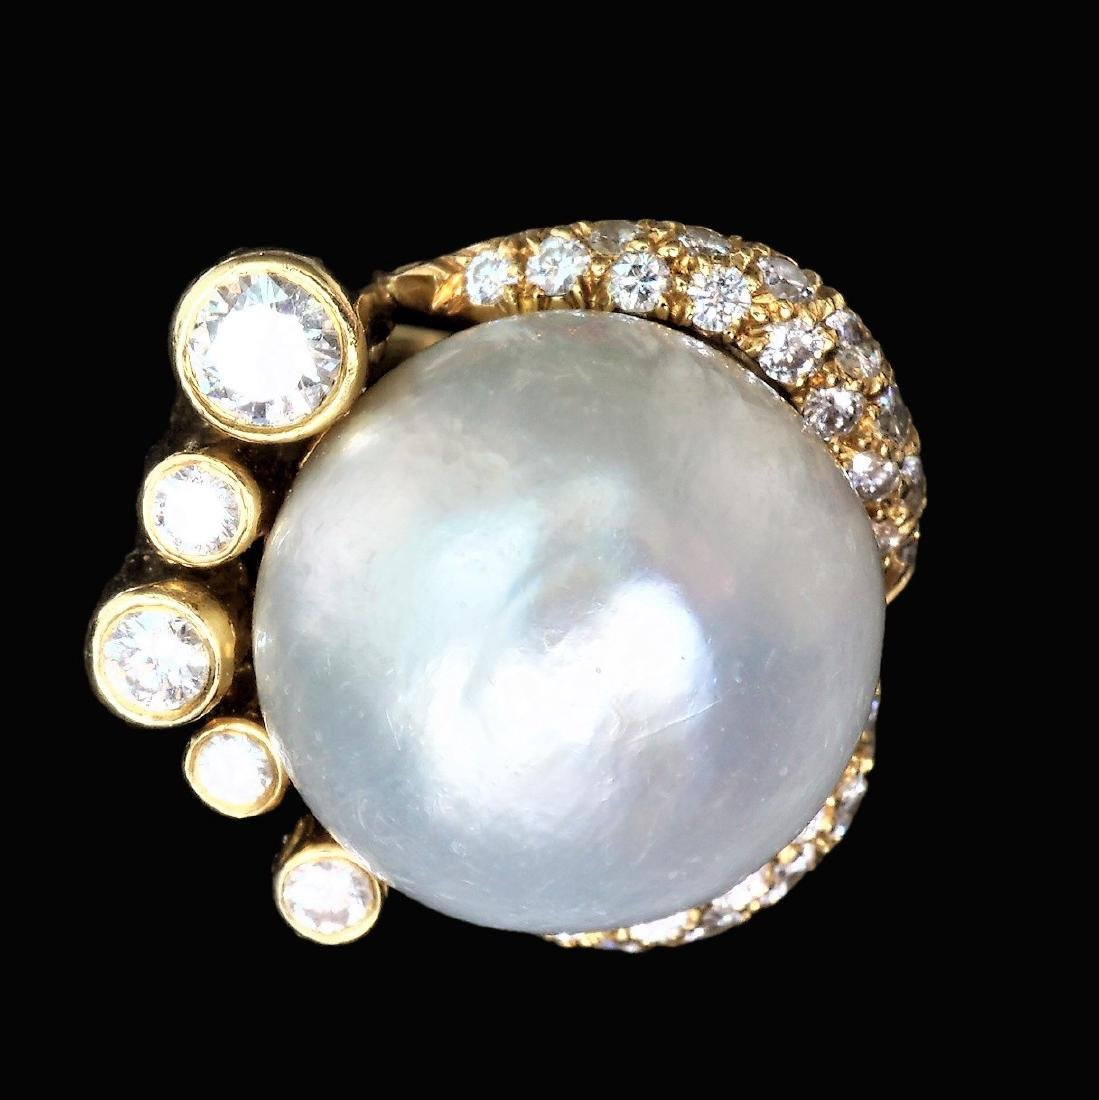 18k Yellow Gold Ring with a 16mm Pearl